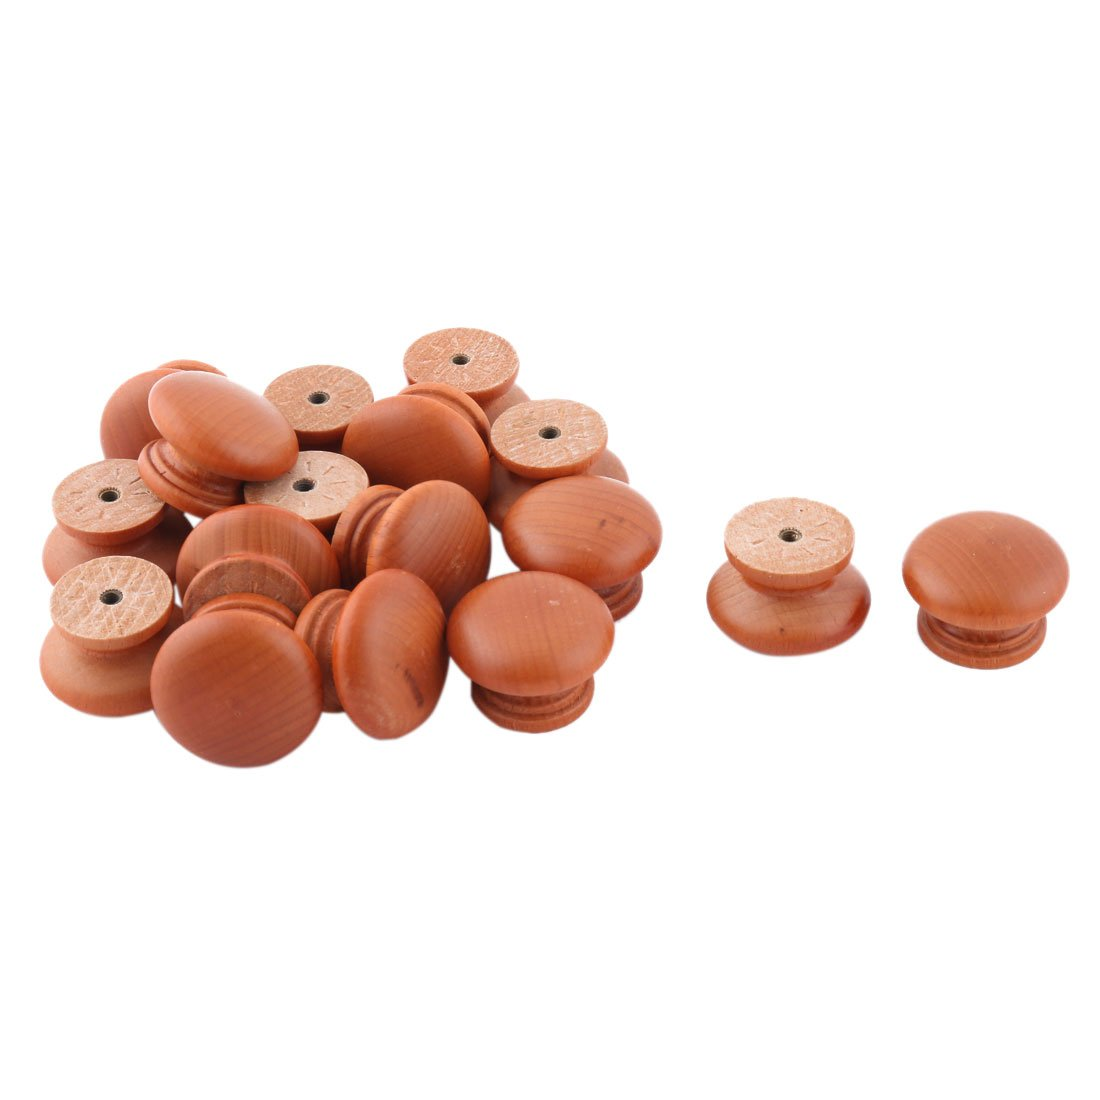 uxcell Wood Bedroom Round Door Dresser Cabinet Closet Handle Pull Knob 17pcs Light Brown by uxcell